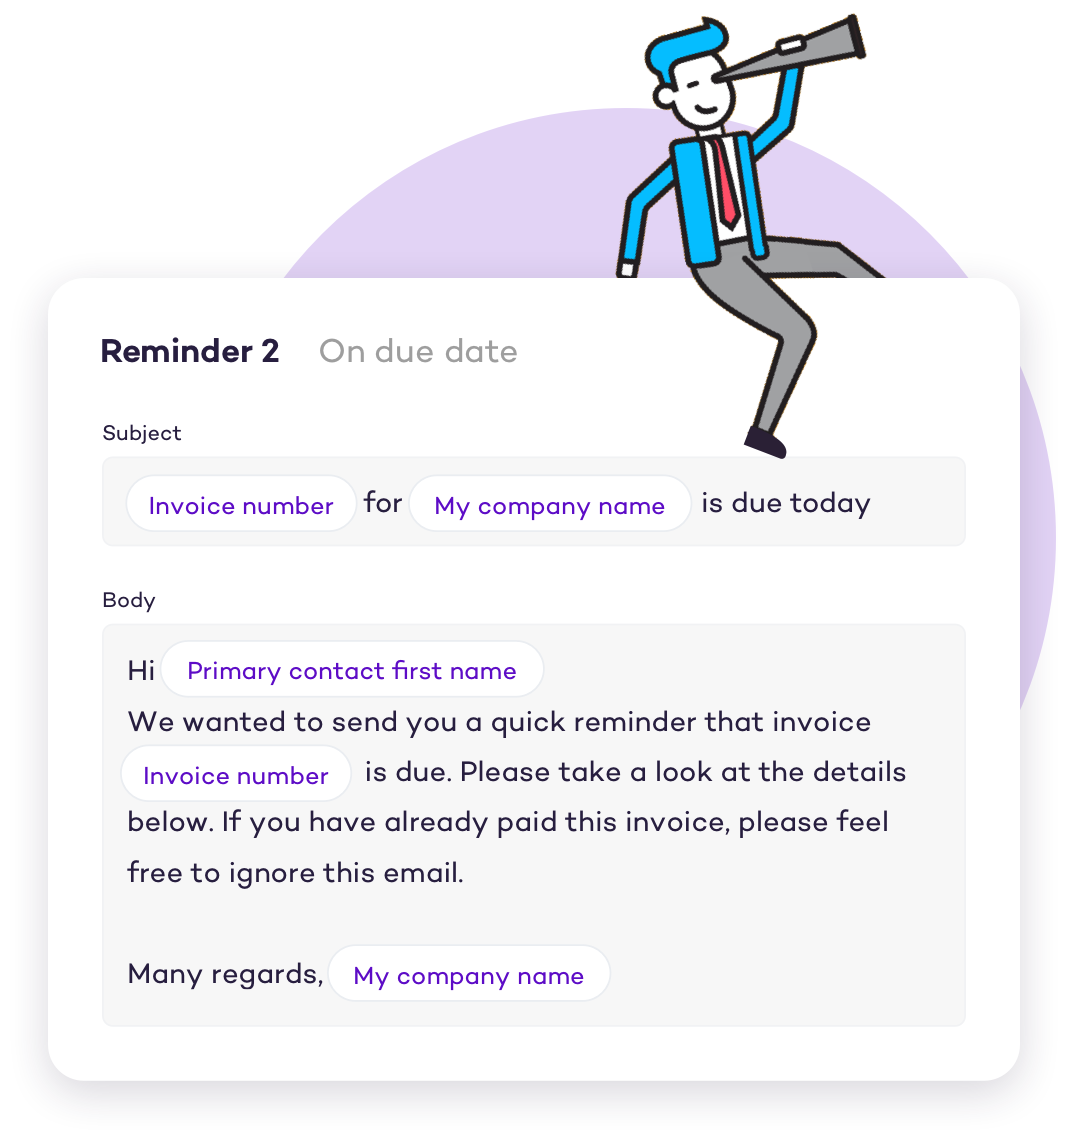 Customise your invoice email reminders